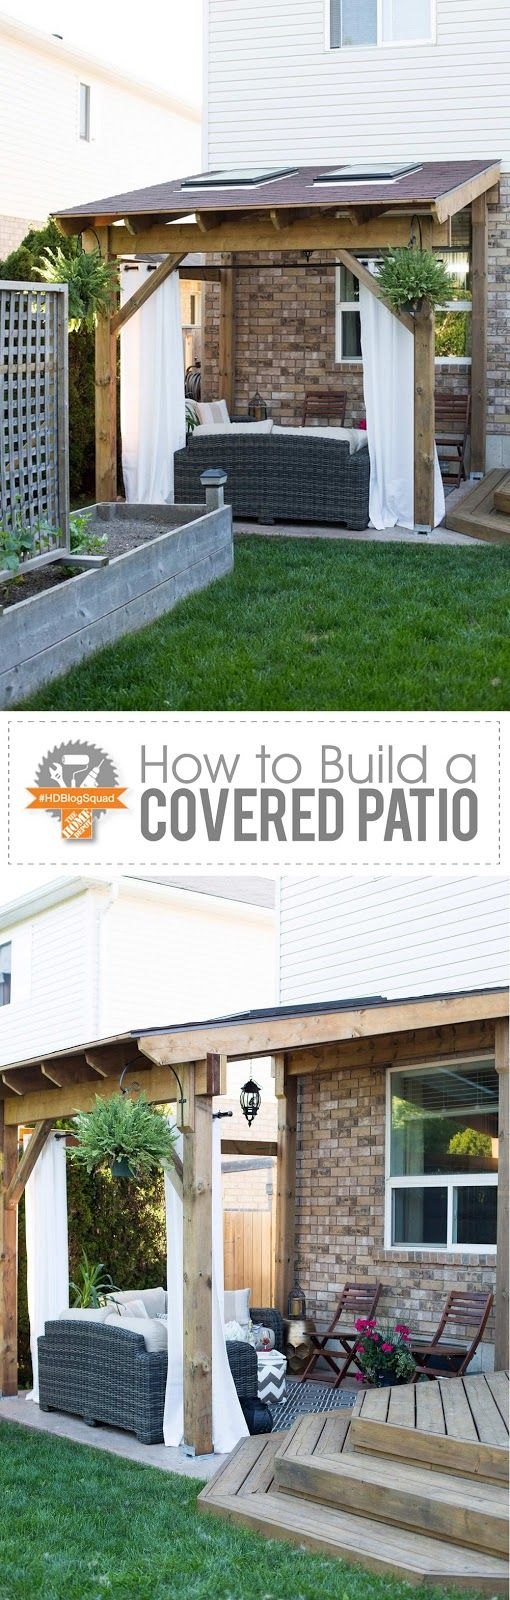 Best 25+ Small Covered Patio Ideas On Pinterest | Cover Patio Ideas,  Covered Deck Designs And Covered Pergola Patio